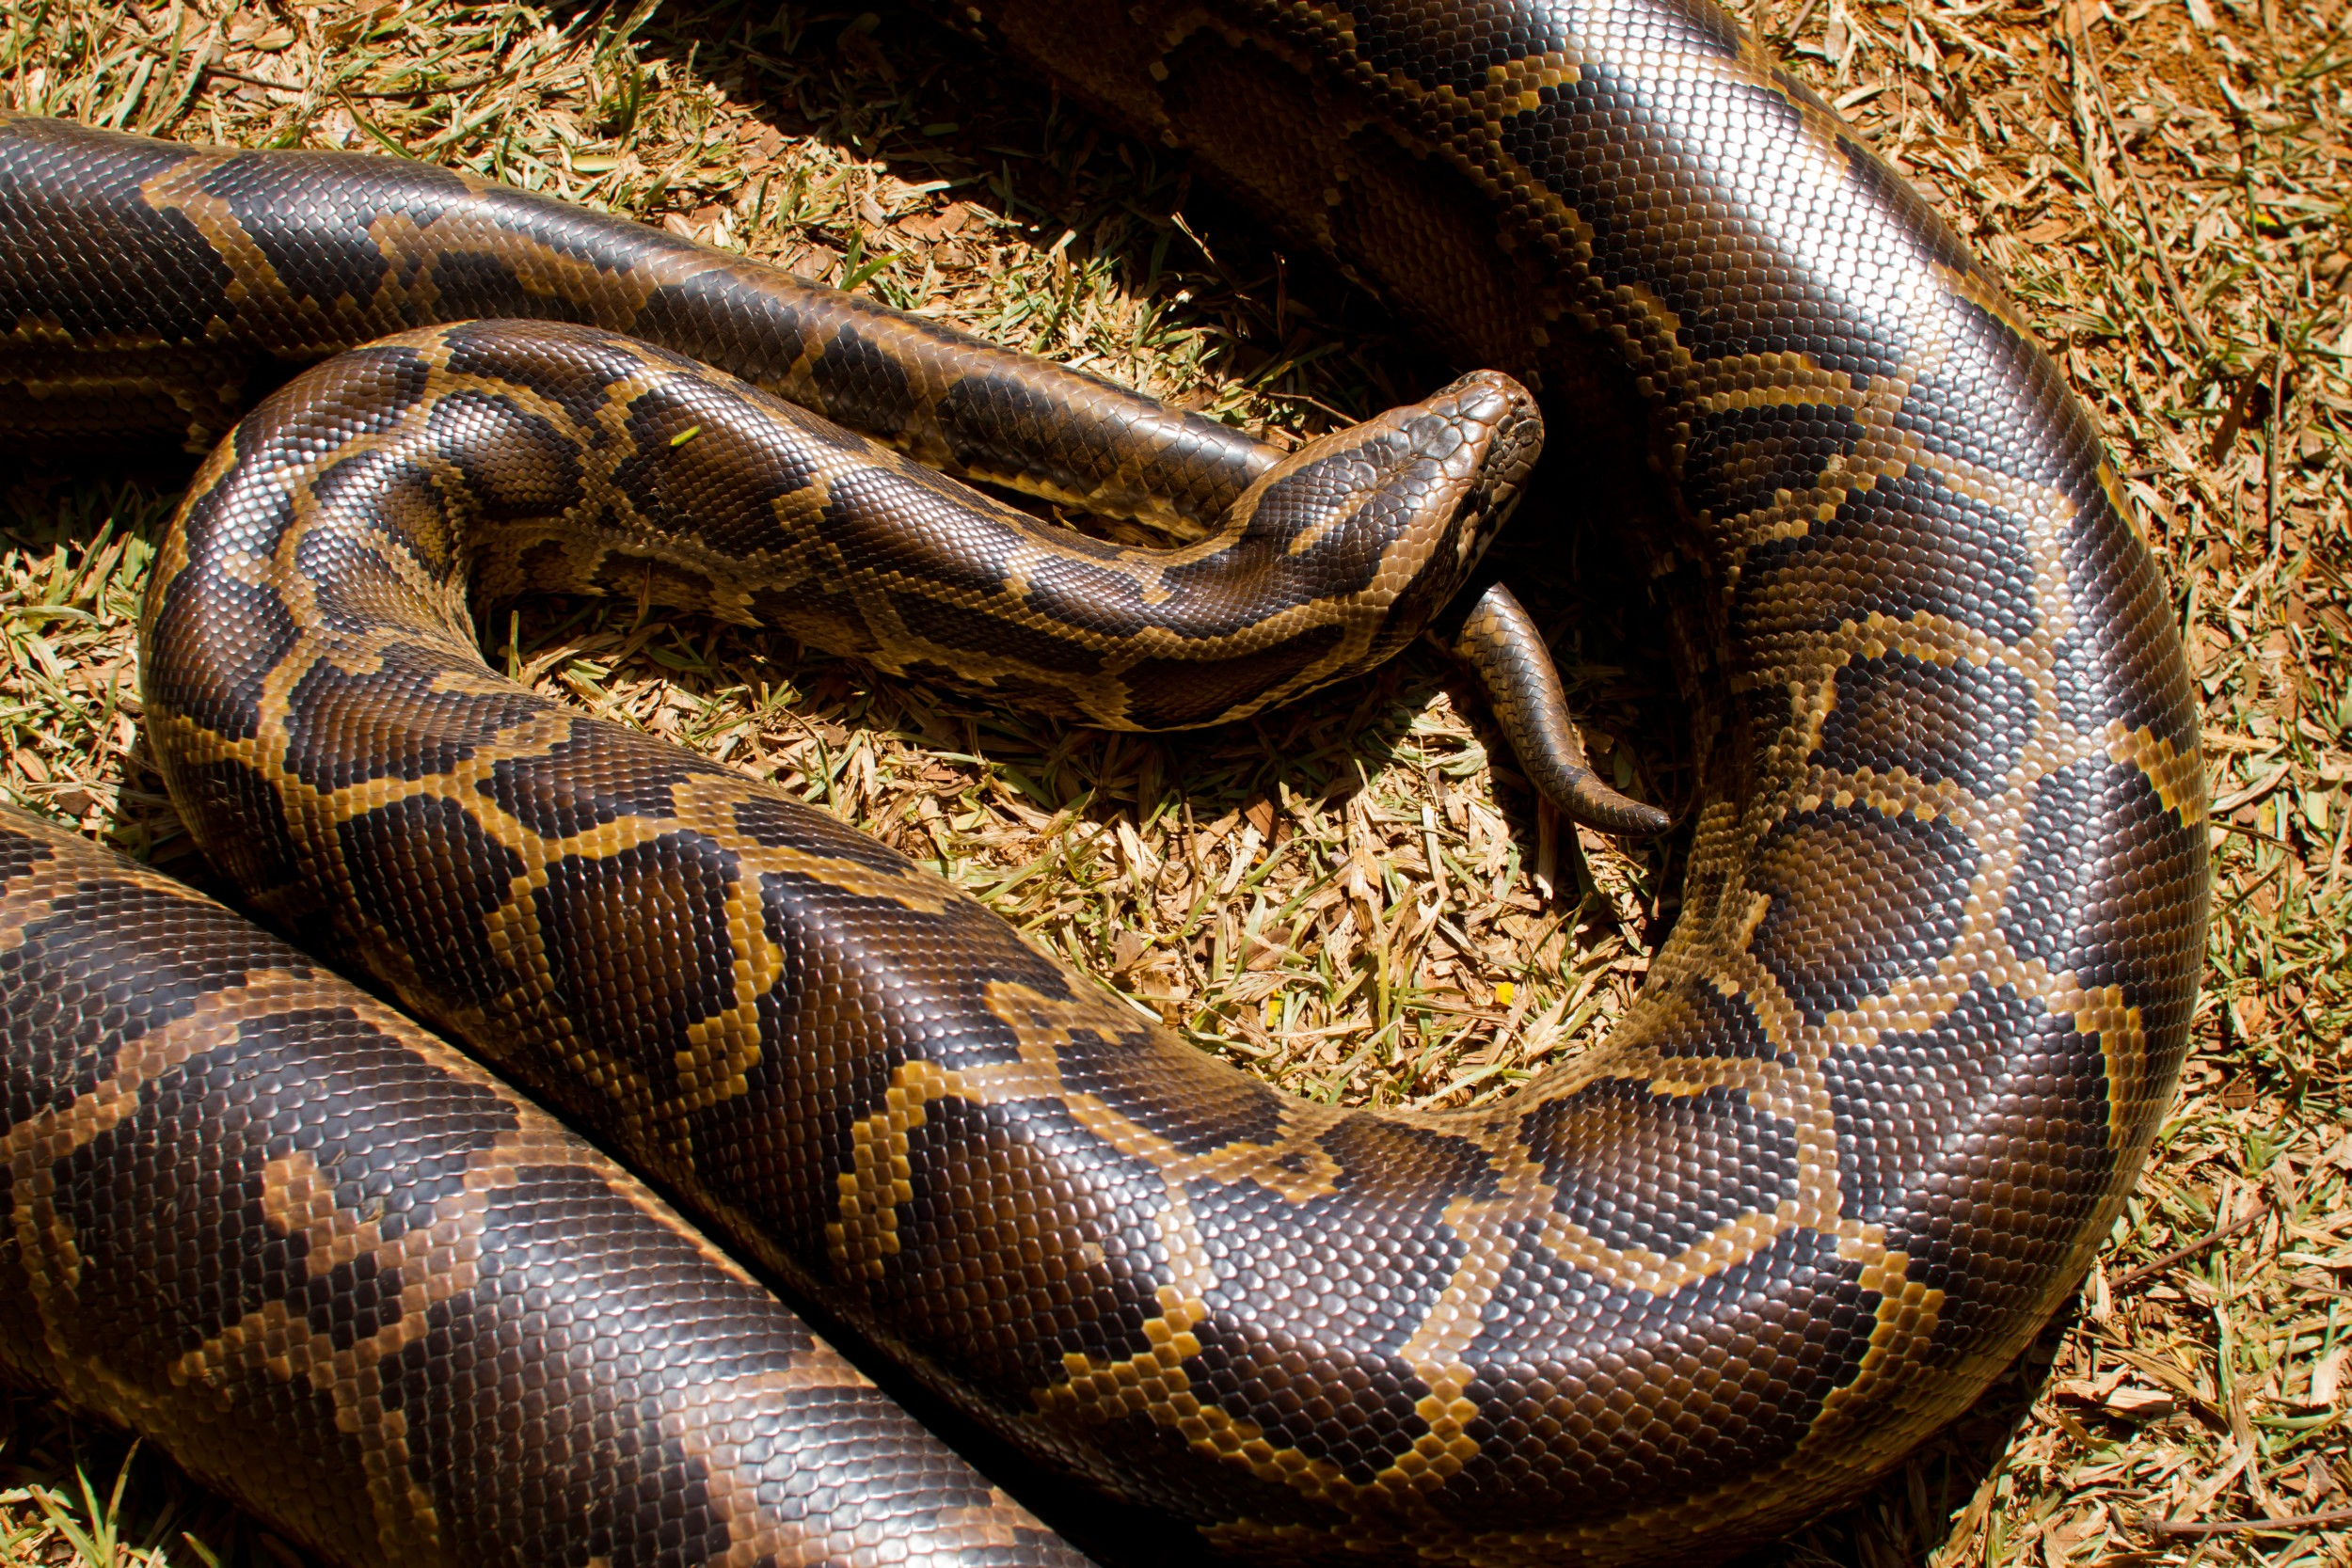 Lo Verdad Te Ensena Principito likewise America Central 643 Especies De Aves 79 in addition Large Locusts 2035mm 100 Bag p24076448 besides Boa Constrictor Facts as well Snake Coloring Piocs. on boa constrictor